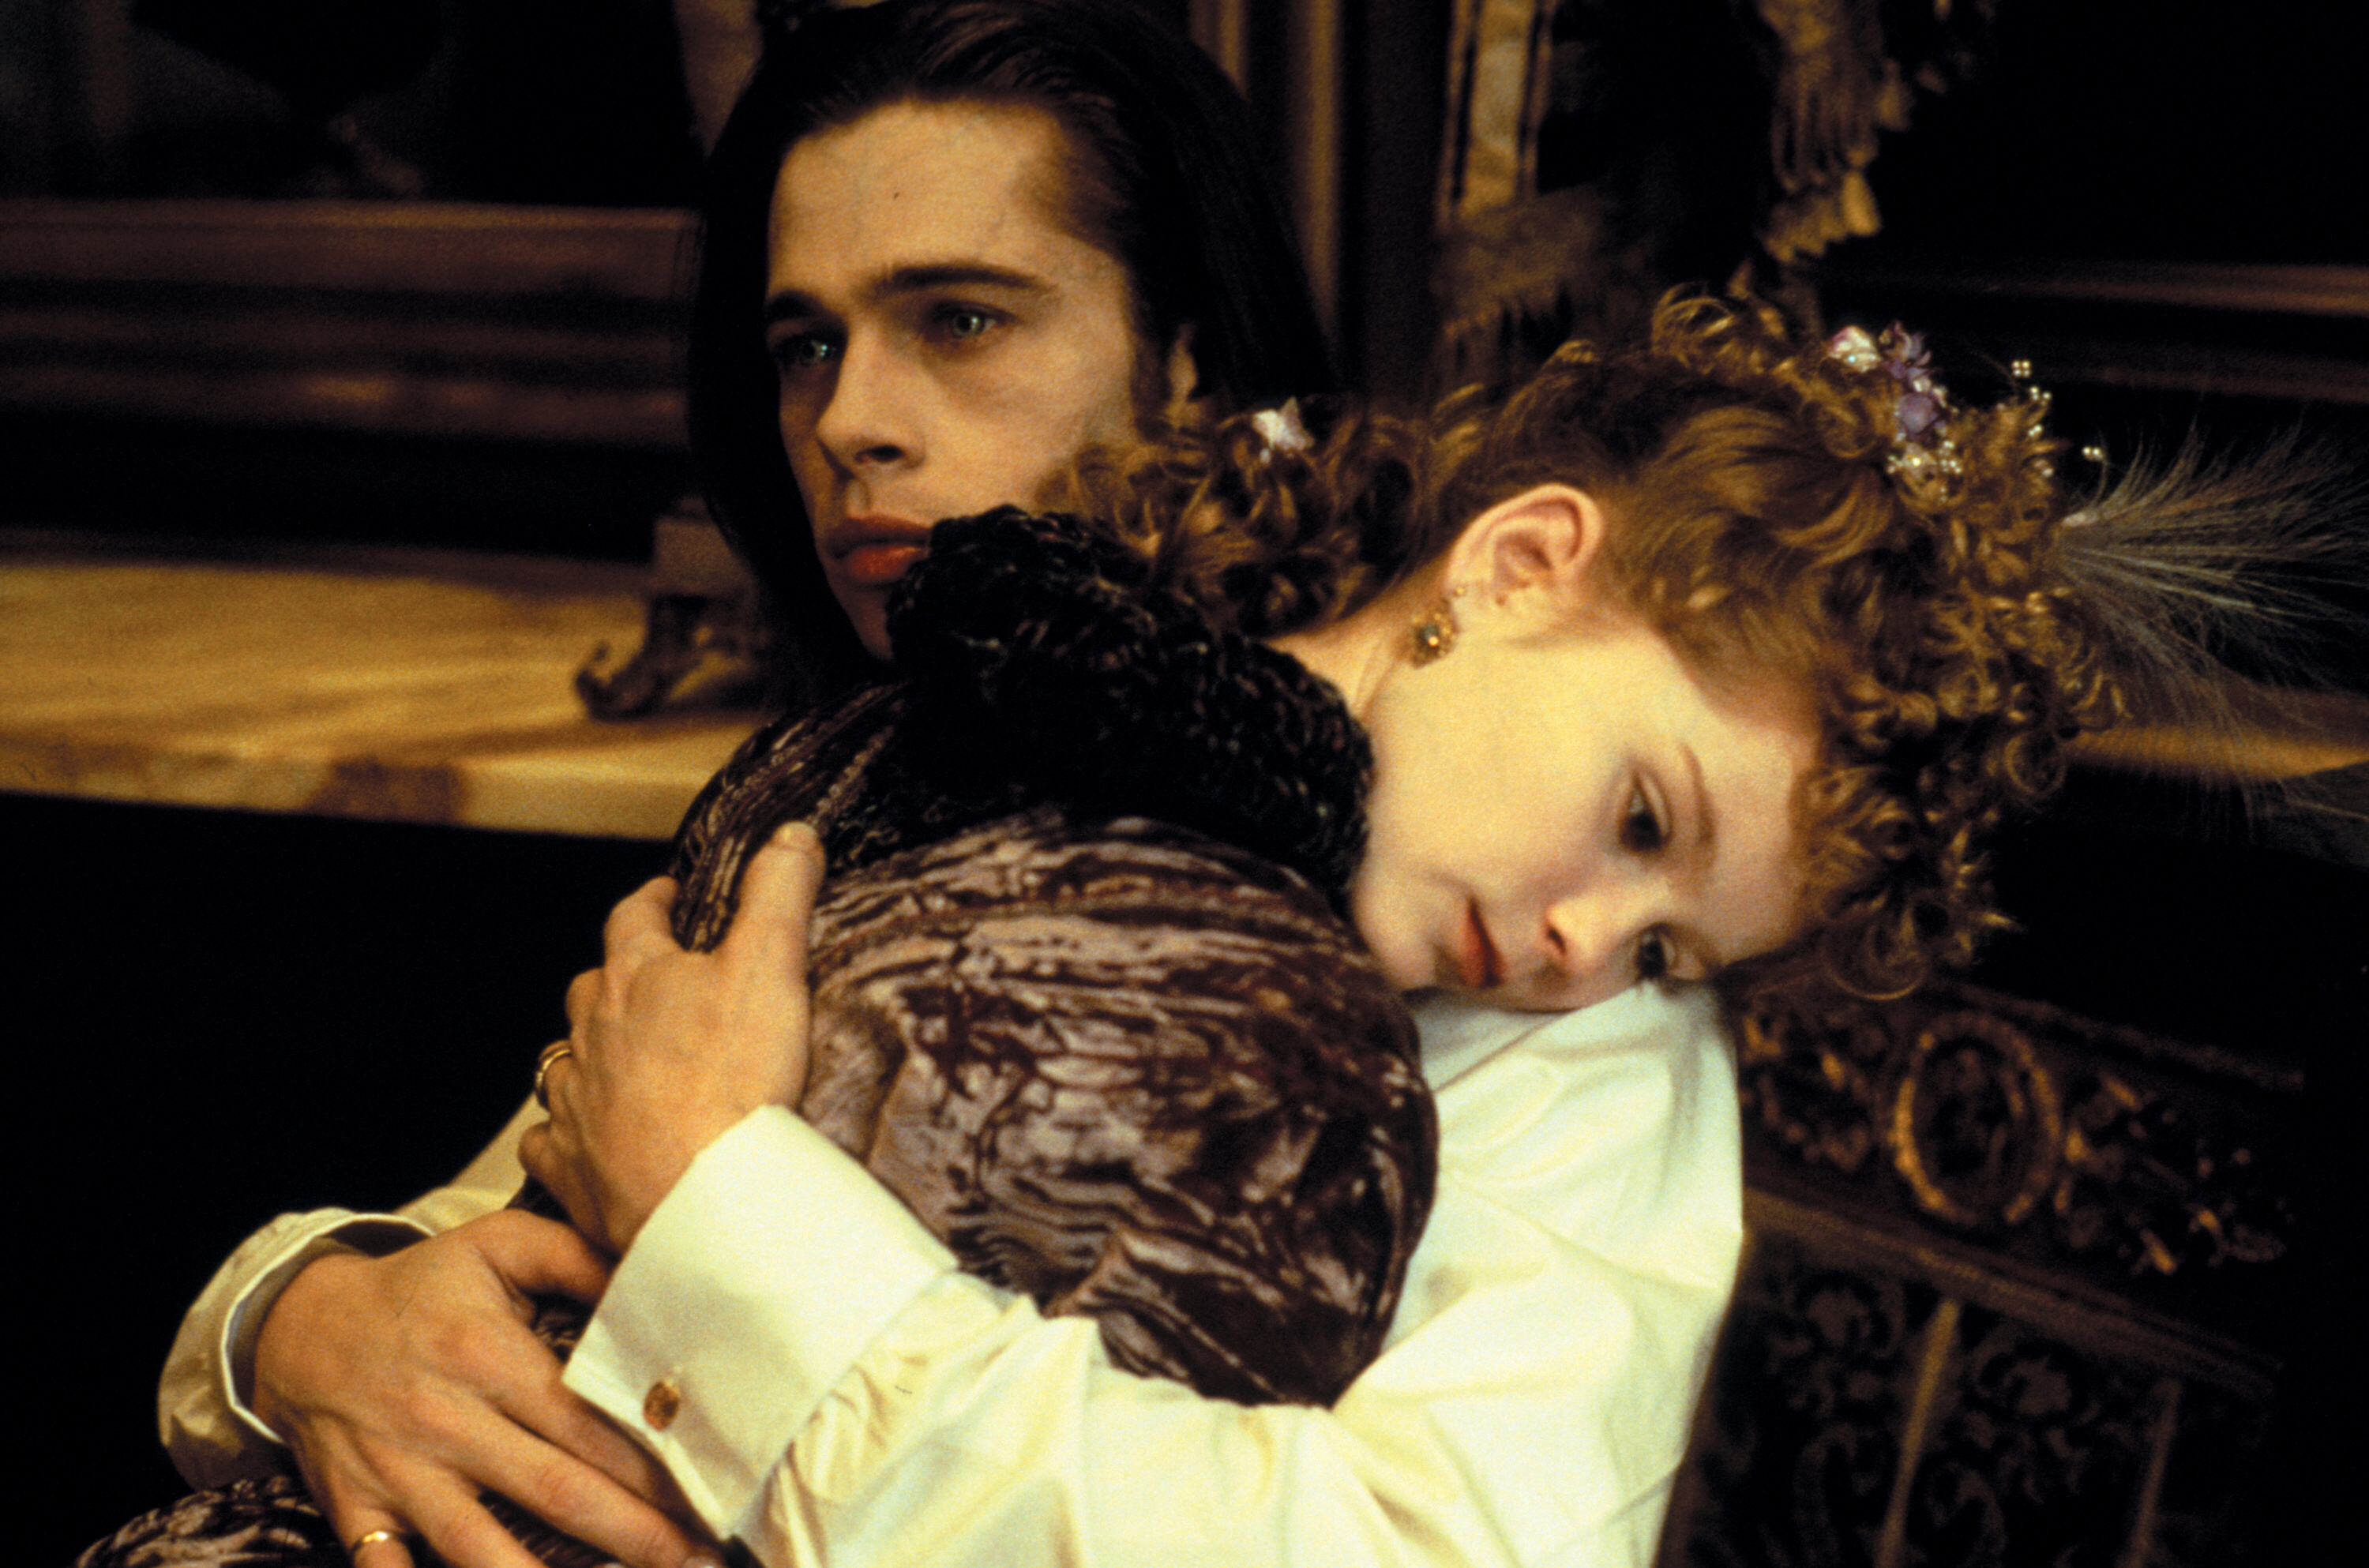 No. 8: She smooched Brad Pitt when she was just a kid